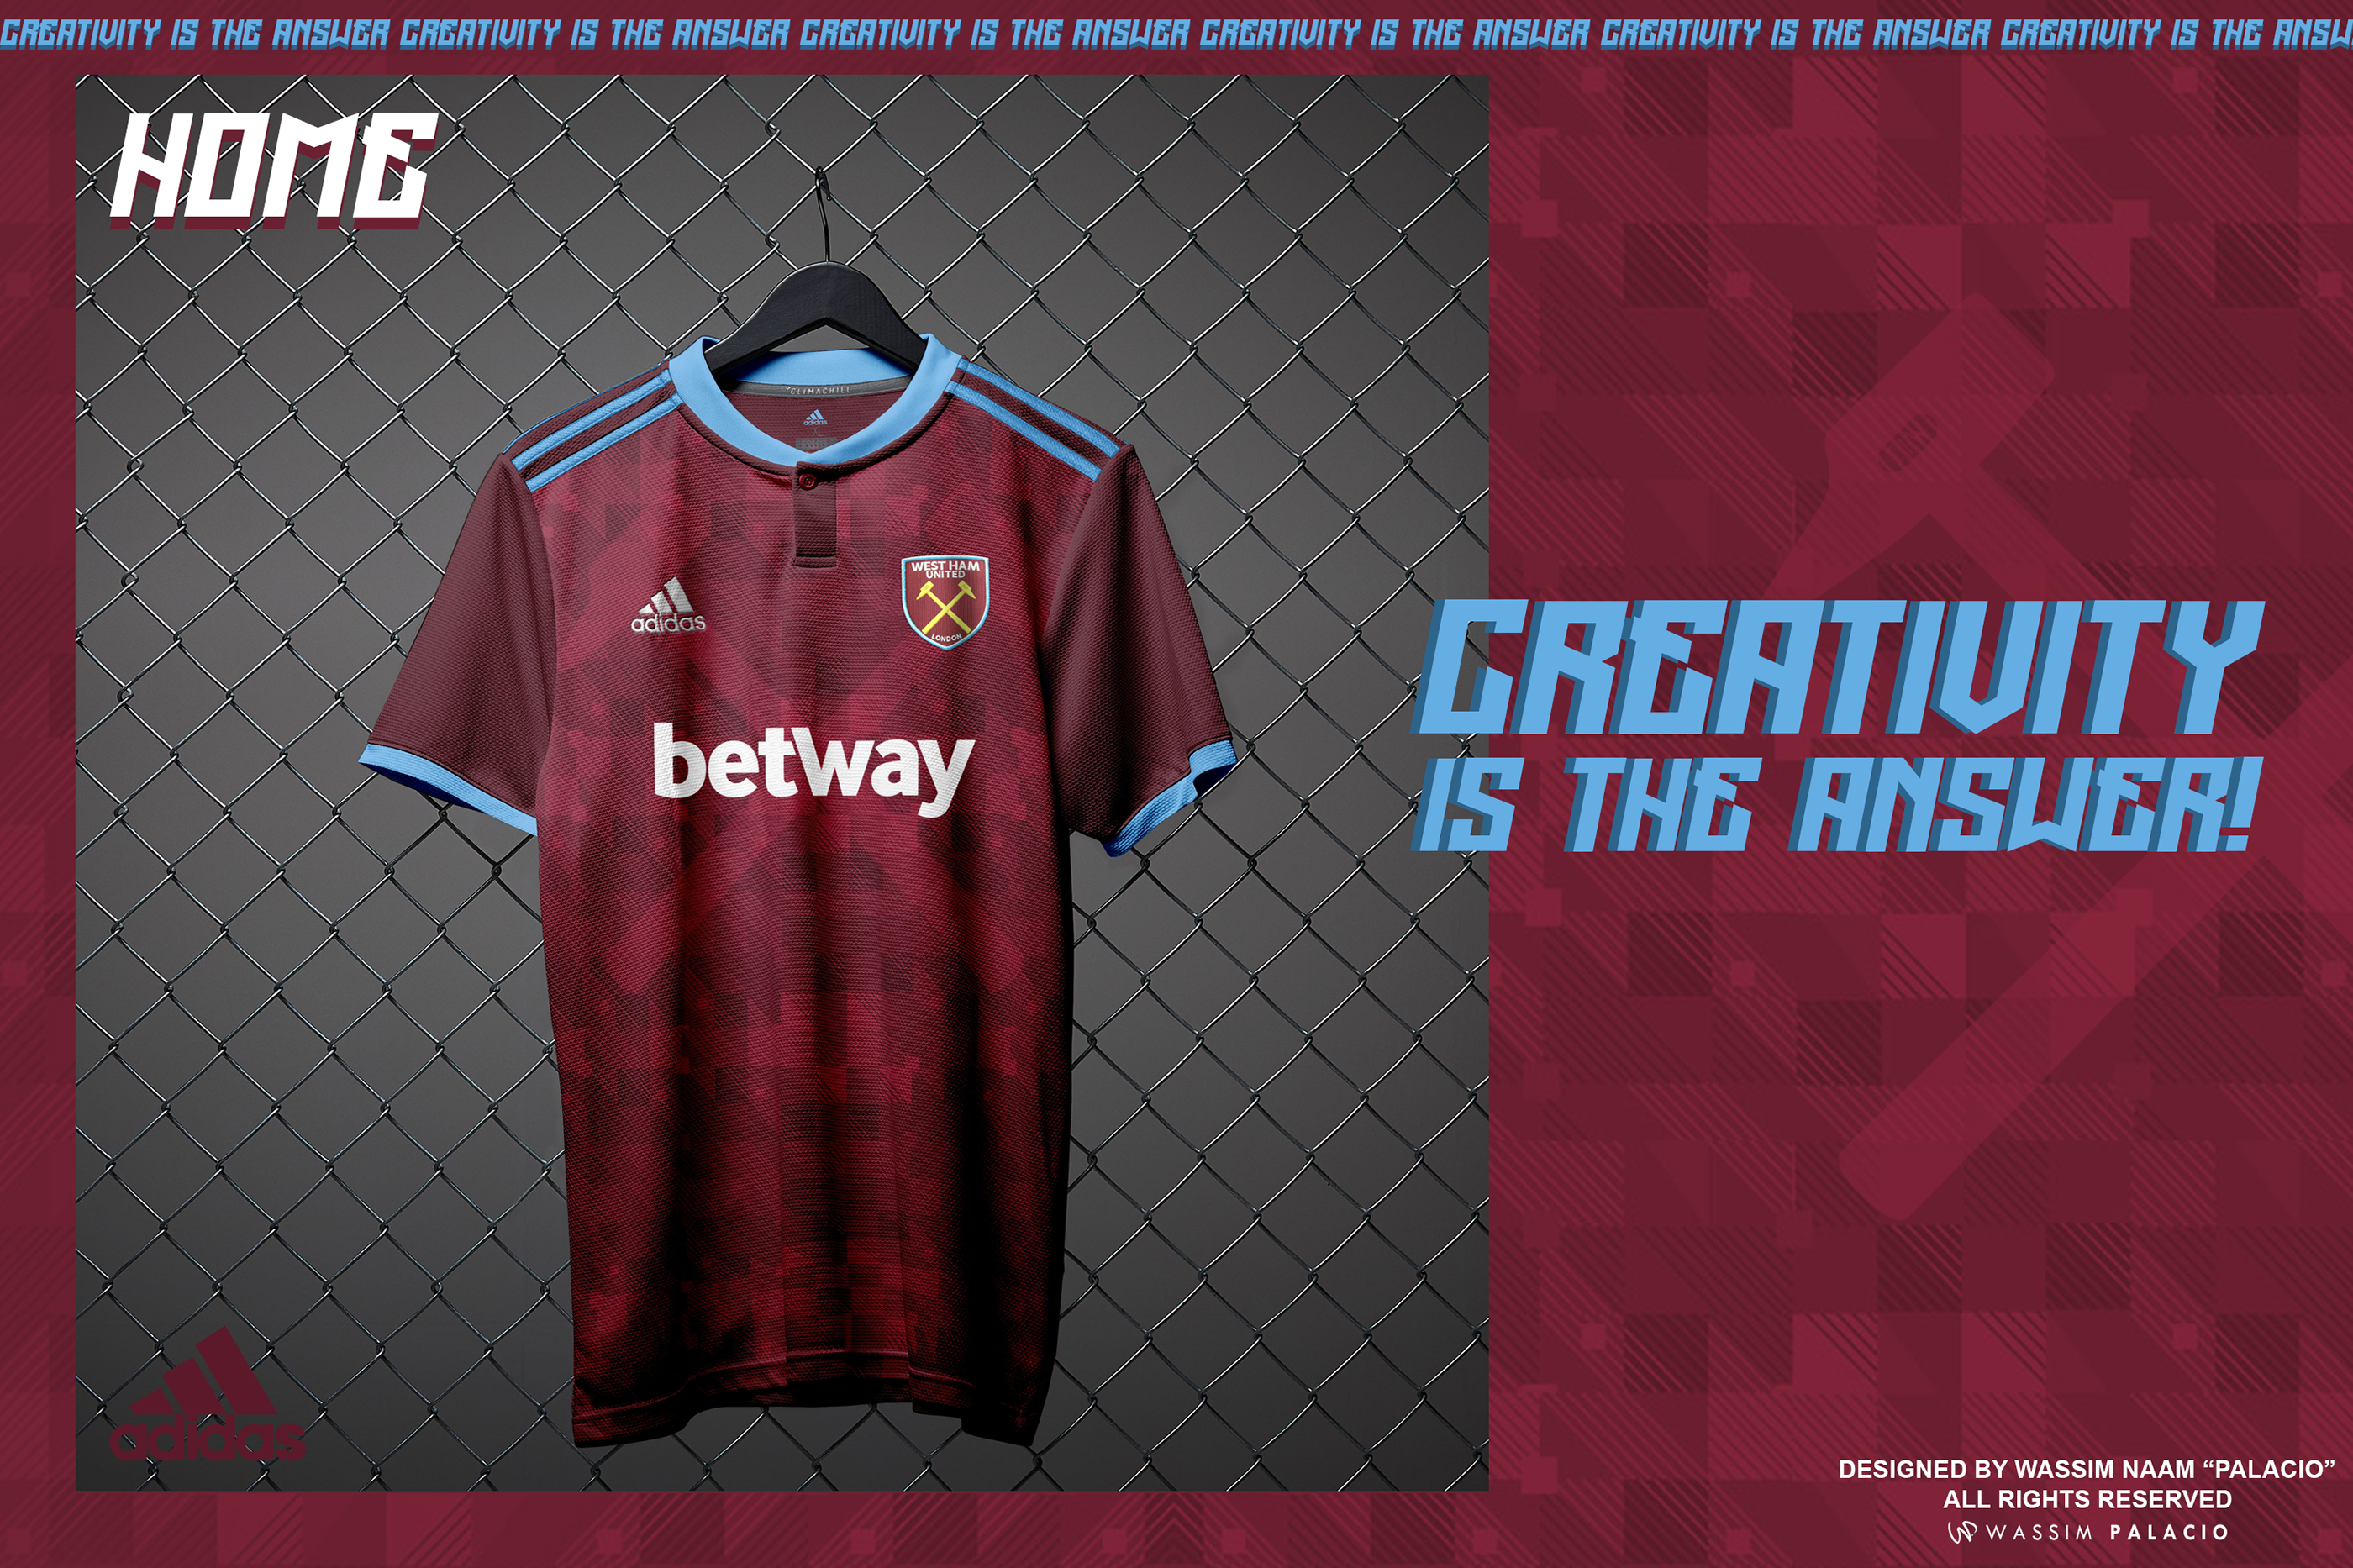 newest 8185a b32e2 Adidas 2018-19 | West Ham United Kits Concept . on Behance